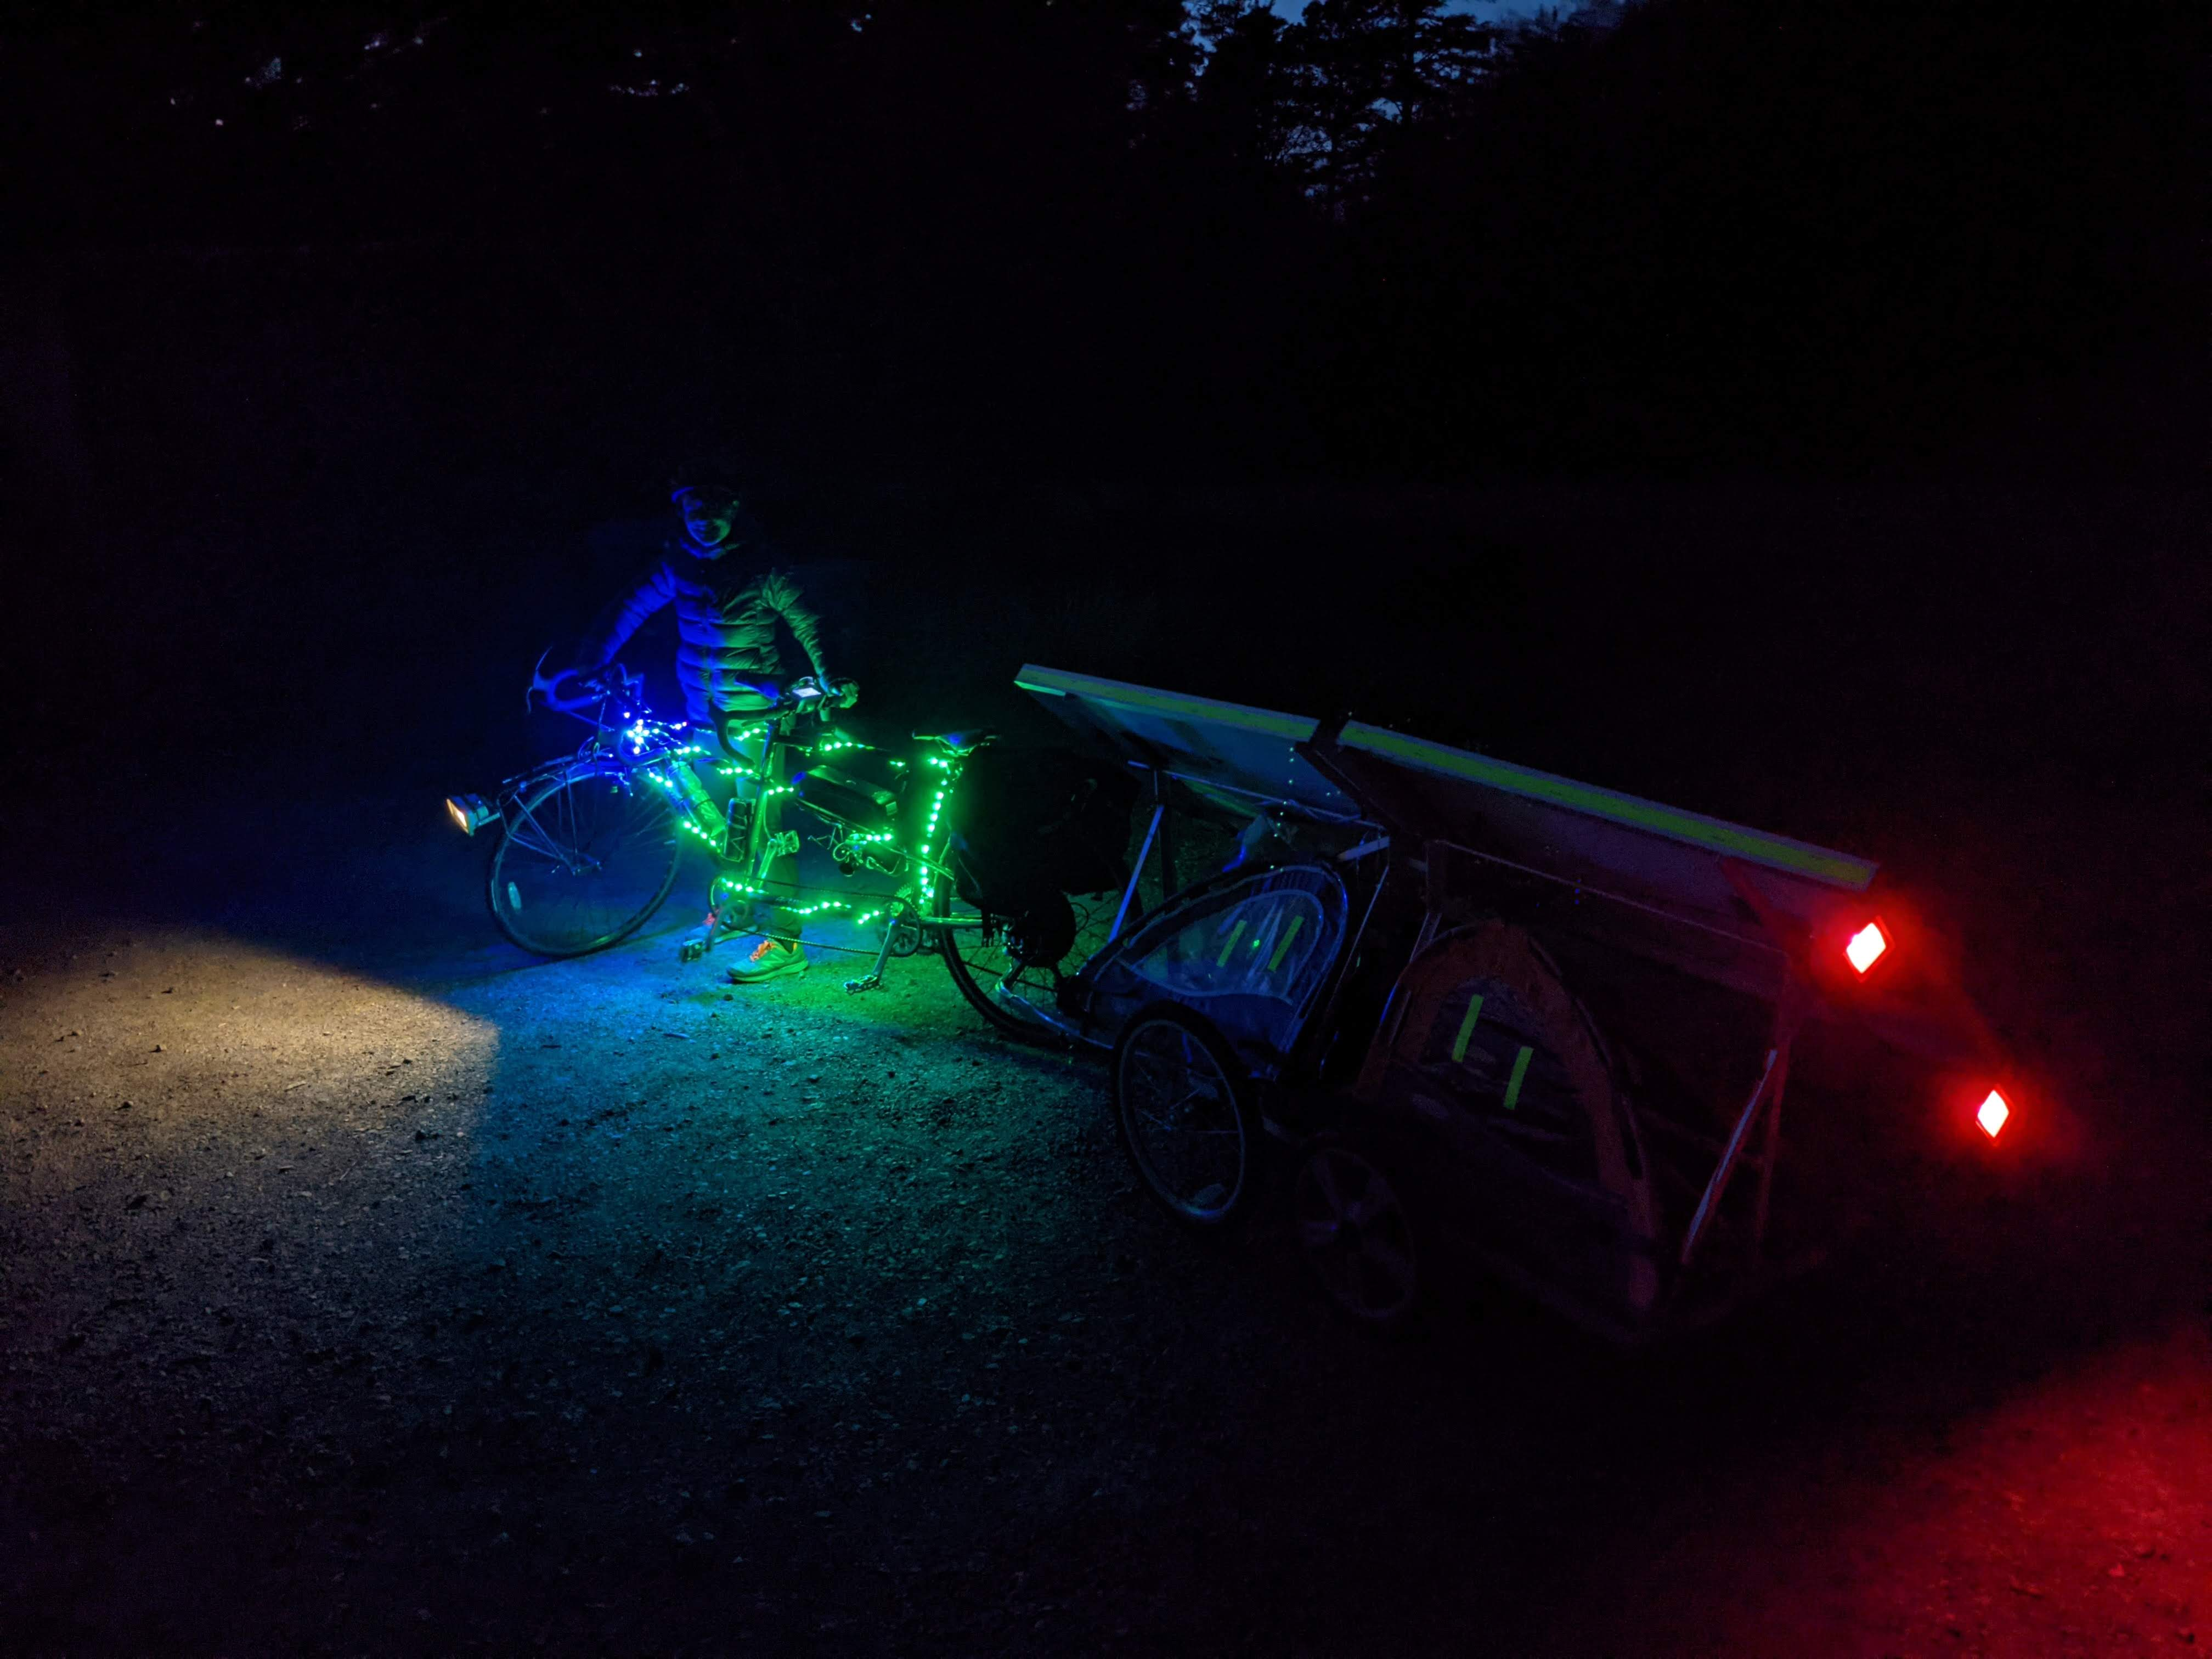 ebike trailer lit up with blue/green lights and tail light